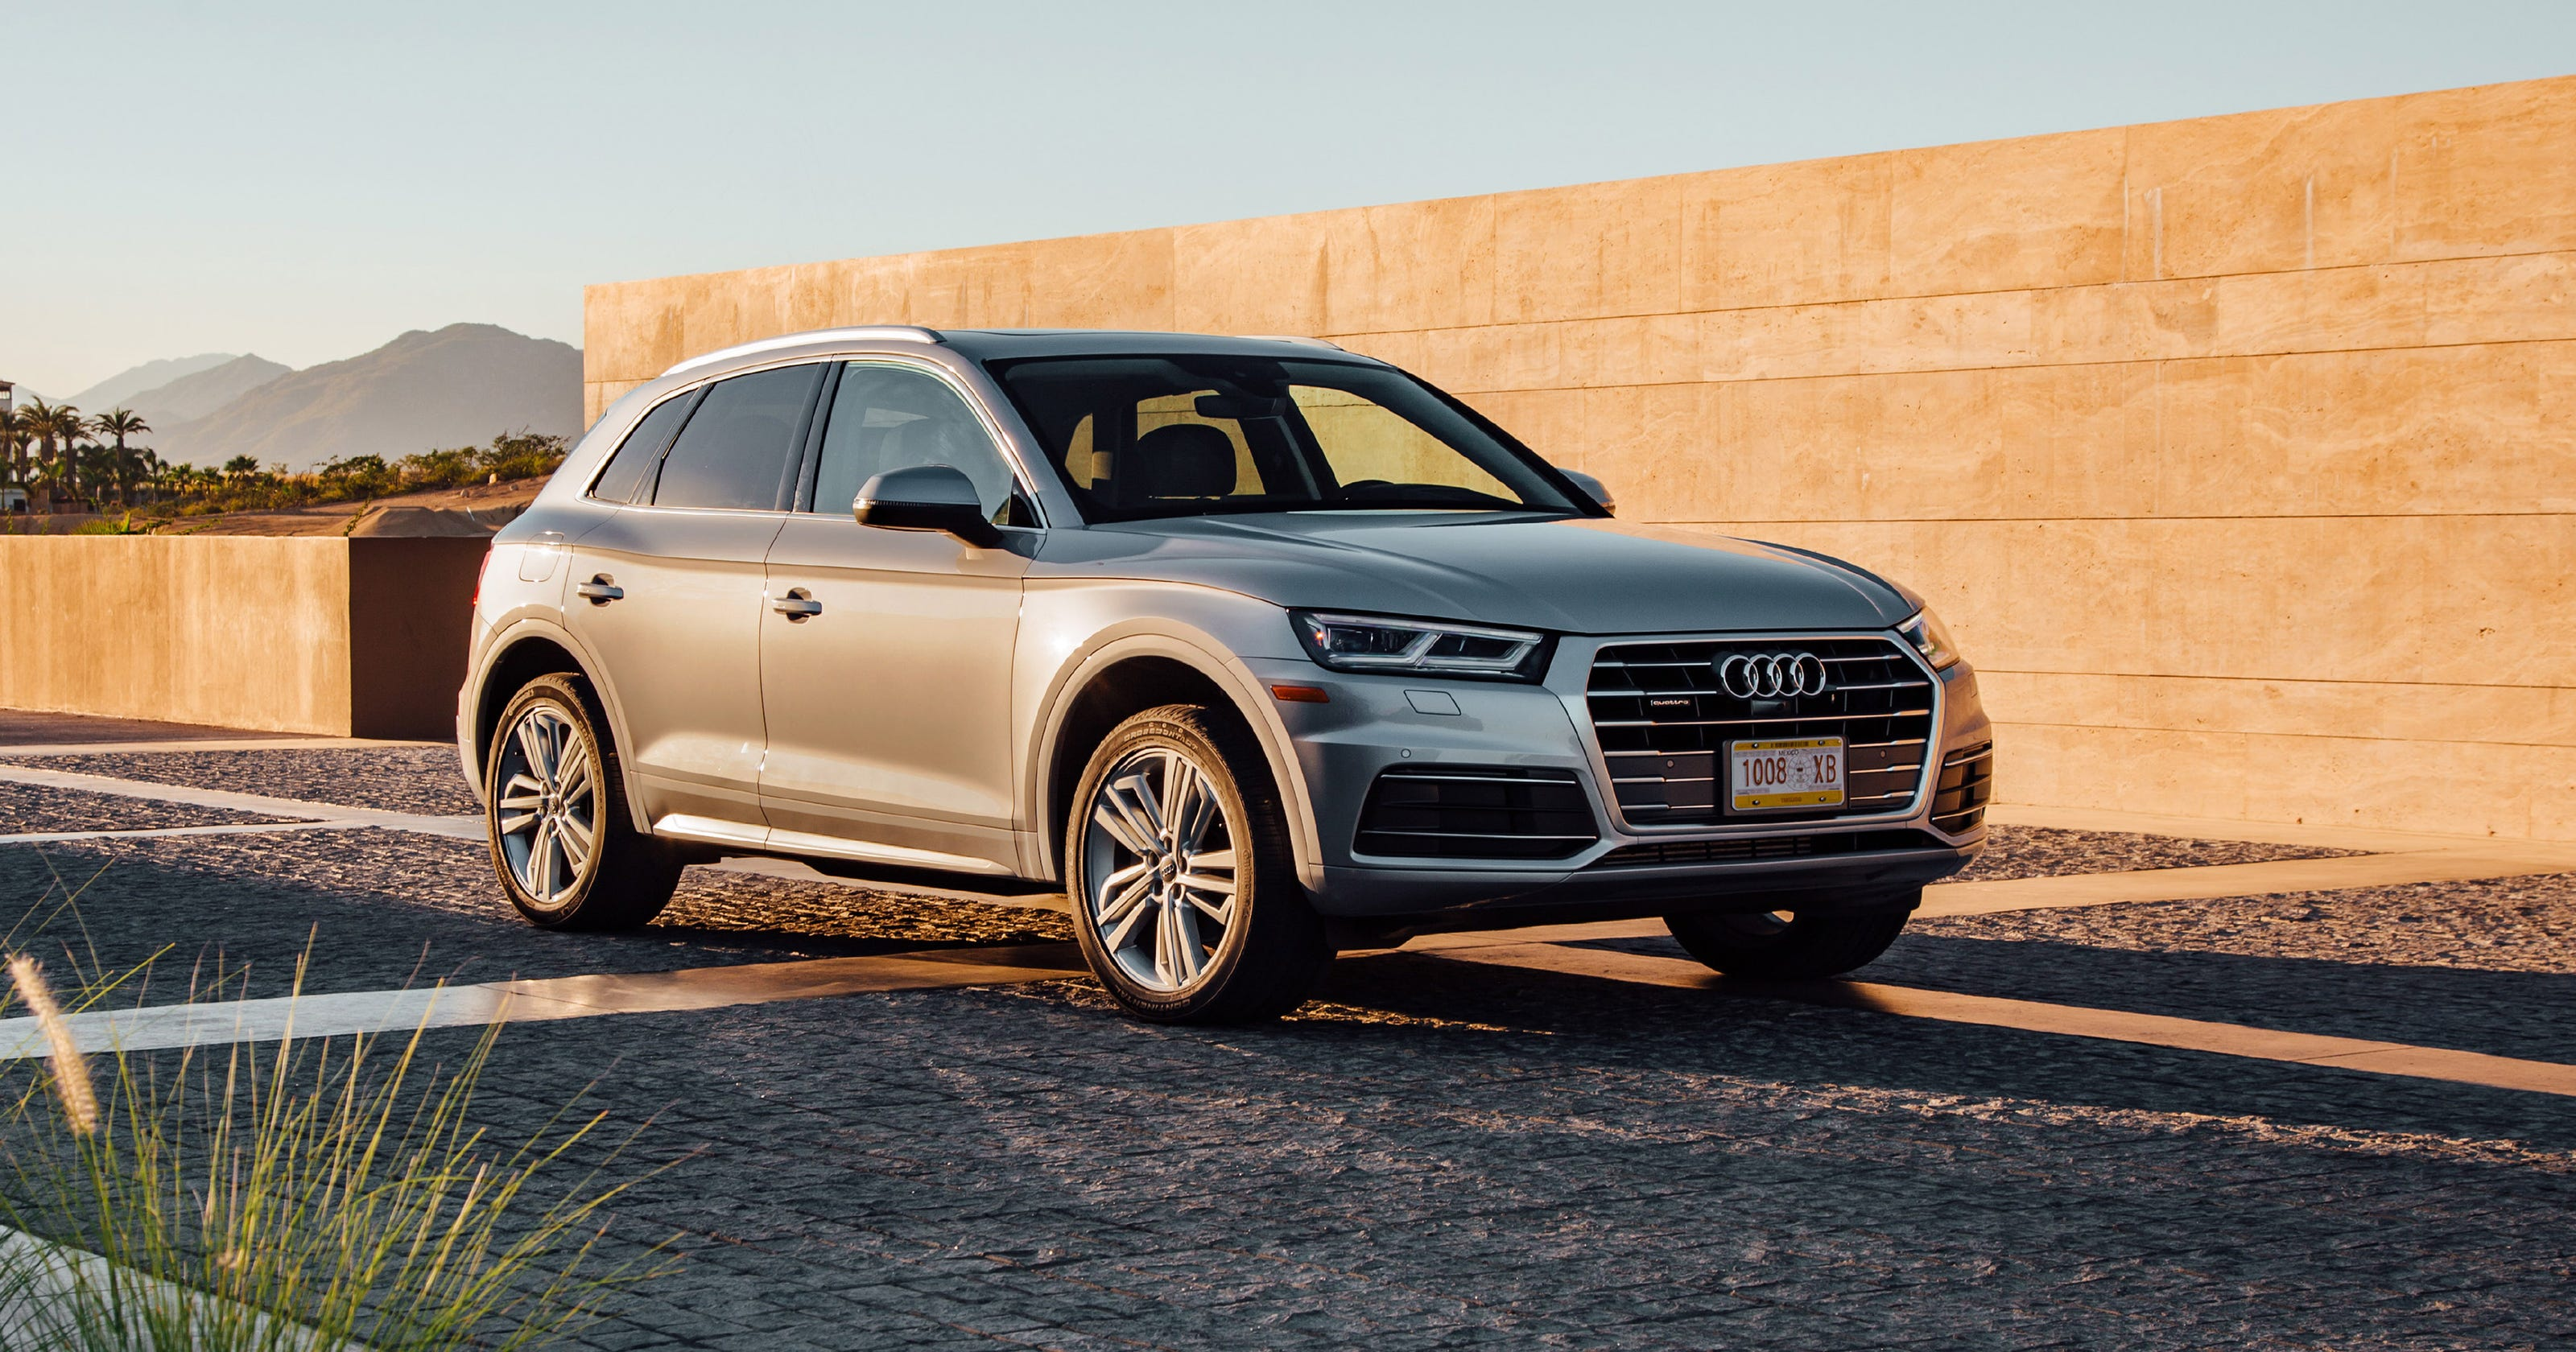 Review: 2018 Audi Q5 SUV Fights A Battle Of Inches